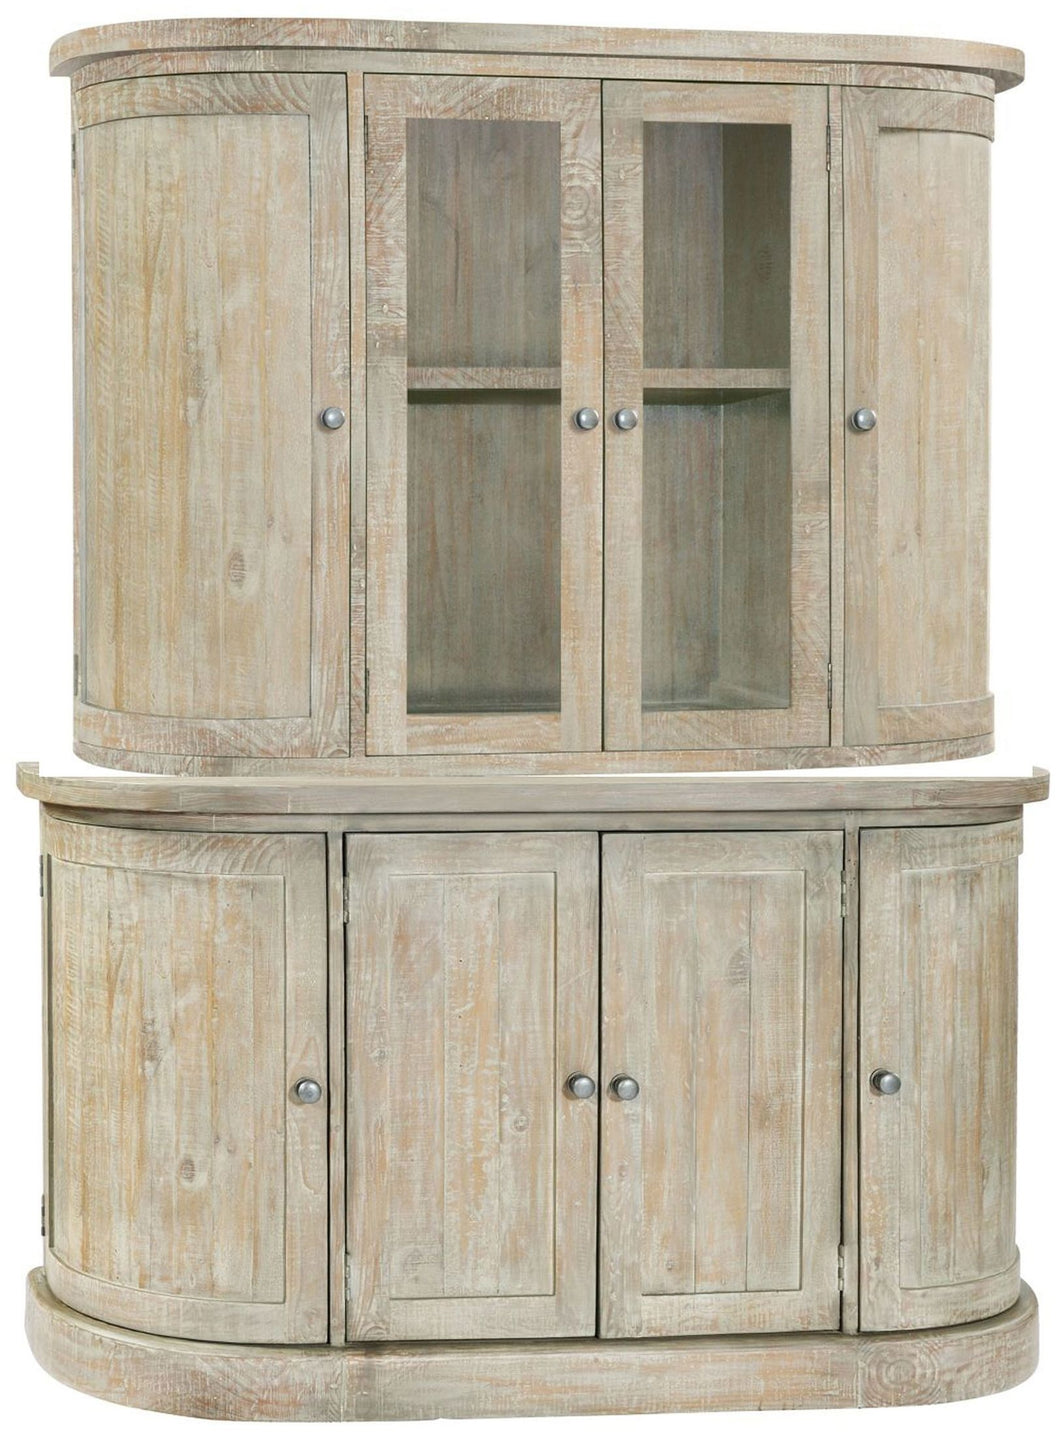 Bowood Dresser with Glass Doors | Large